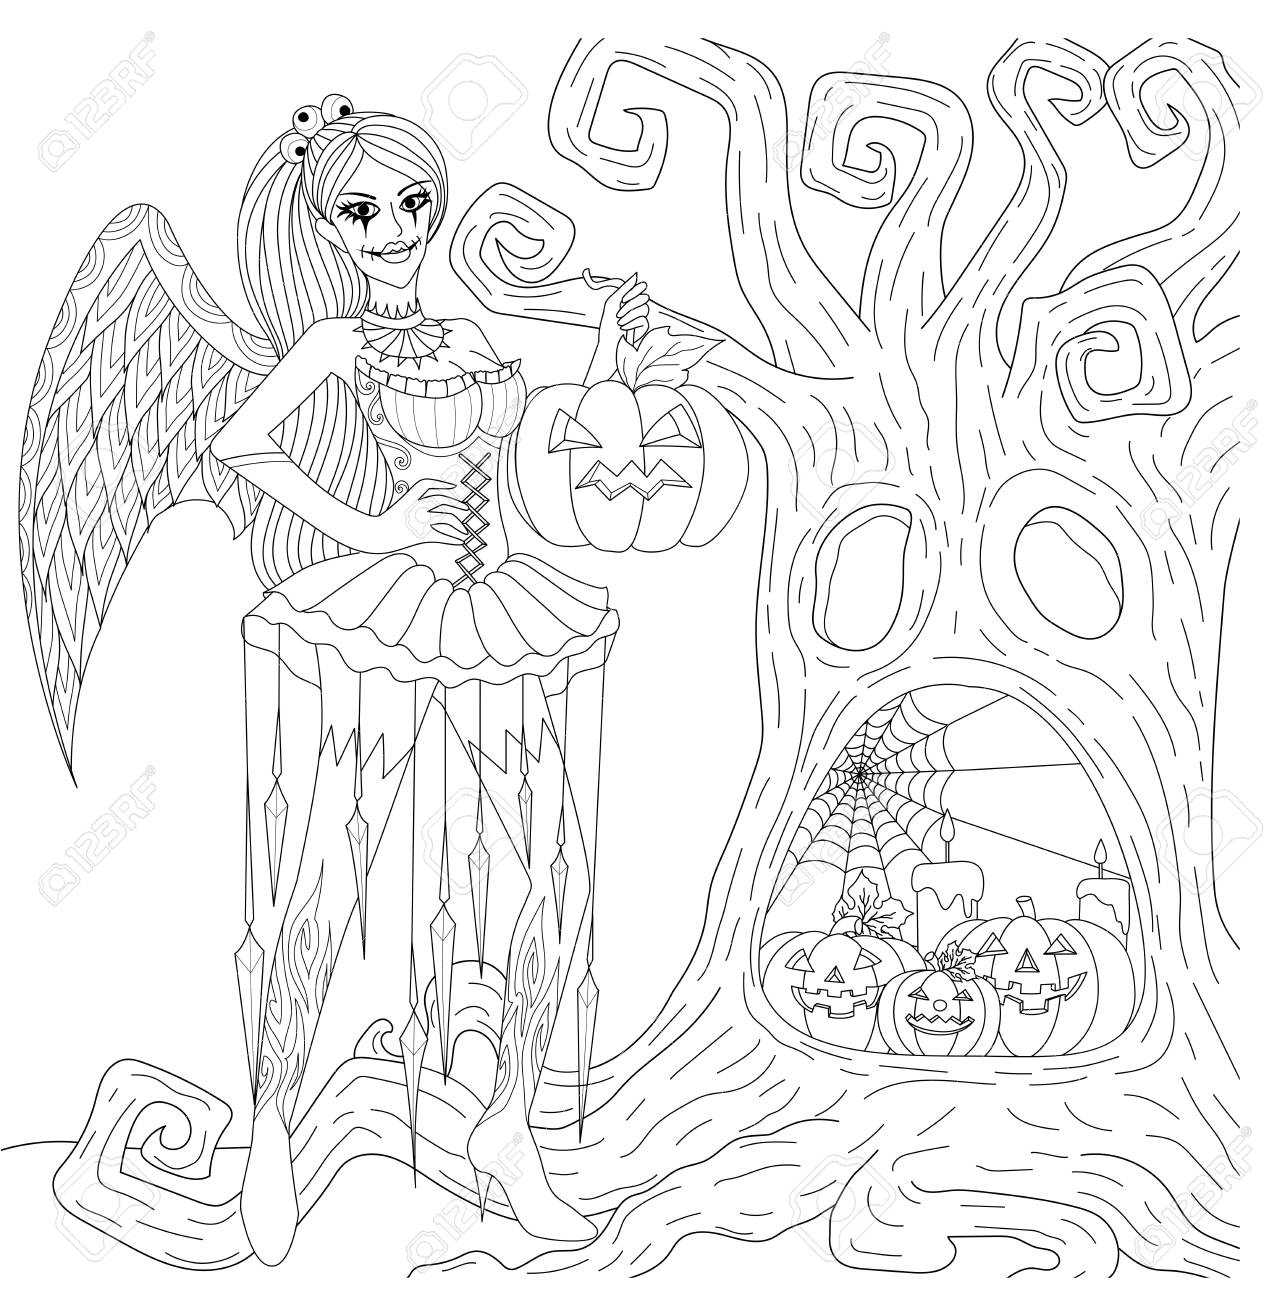 Halloween Coloring Pages  Coloring Book For Adults  Gothic Girl